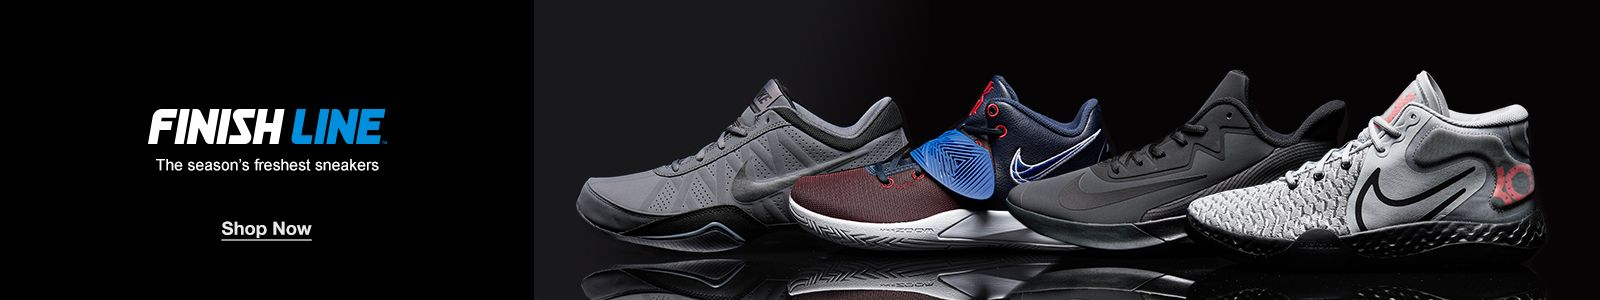 Finish Line, The season's freshest sneakers, Shop Now